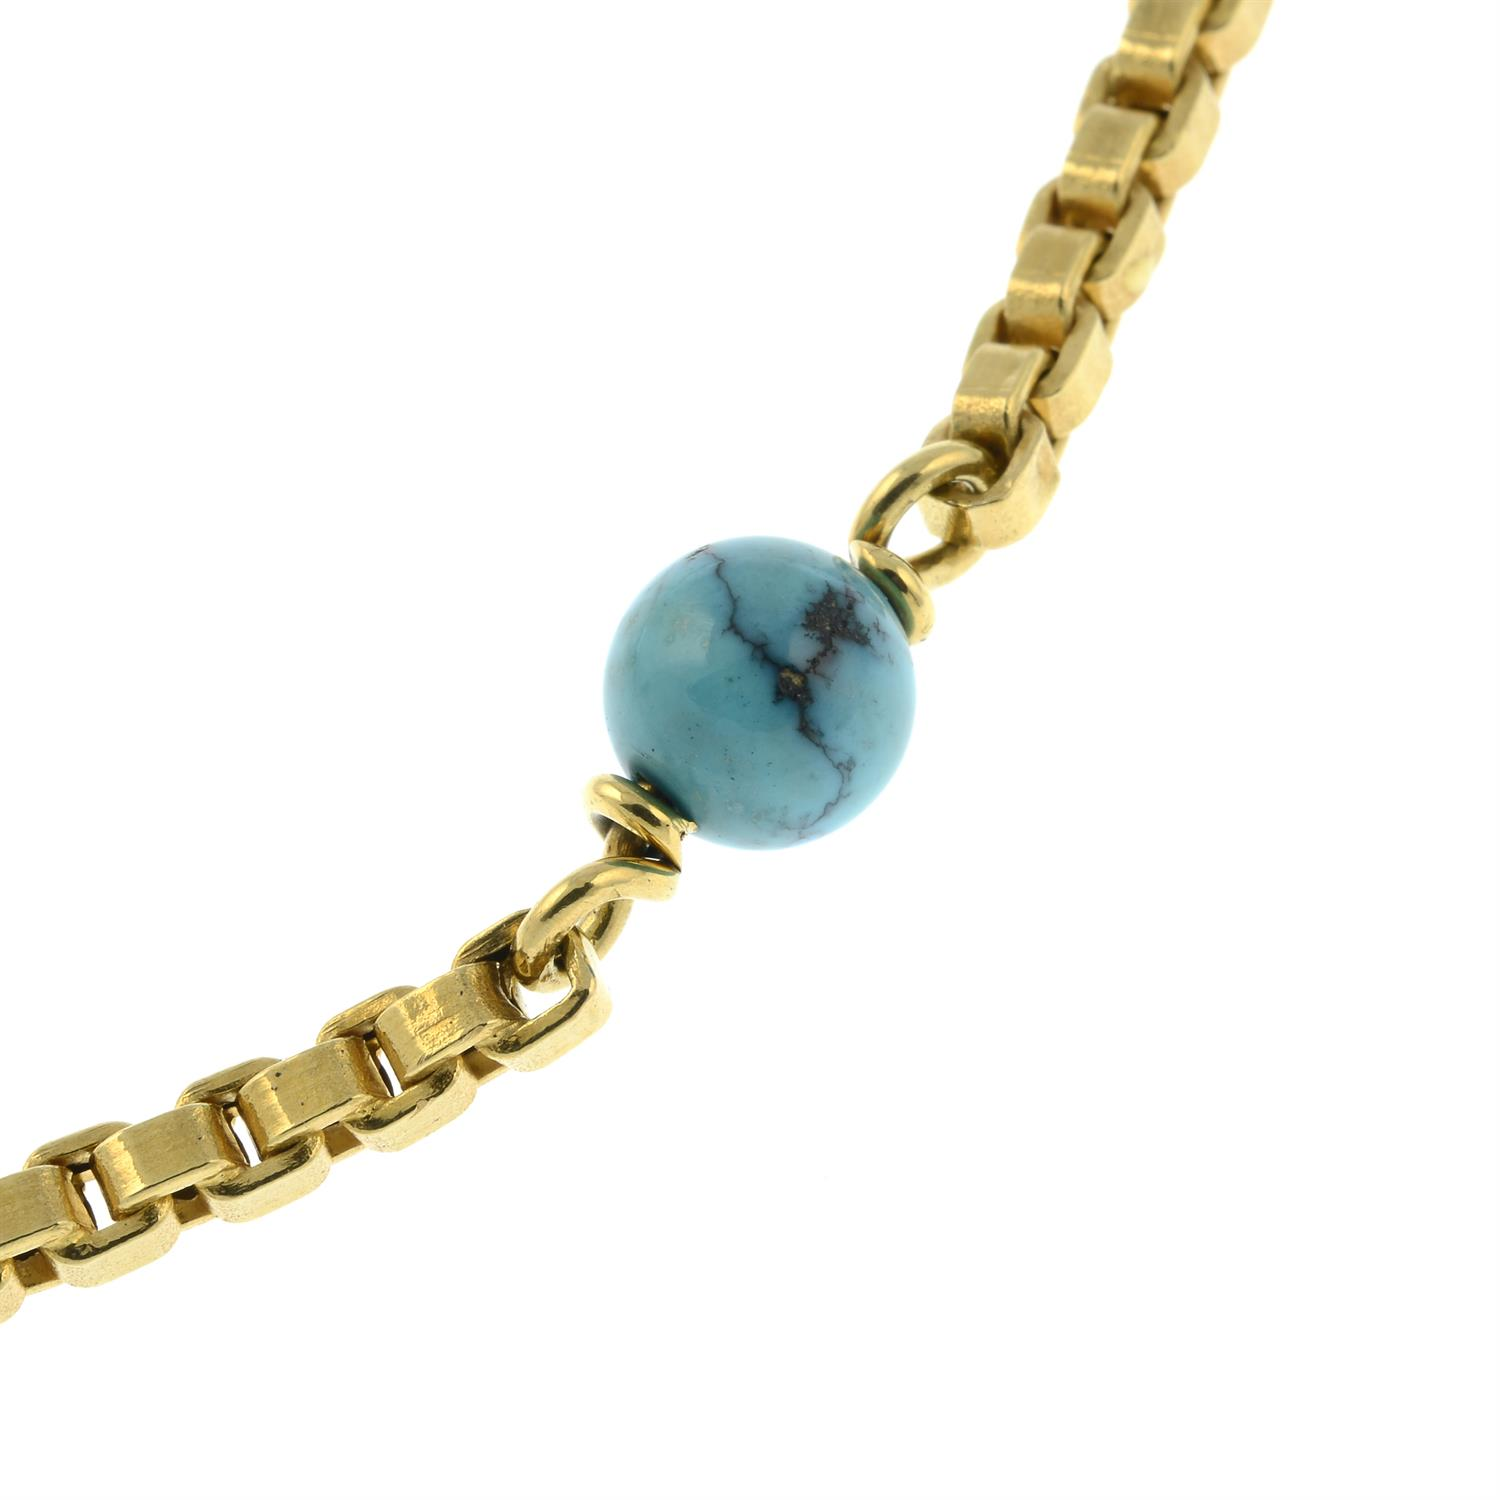 A mid 20th century Italian 18ct gold necklace, with turquoise matrix bead spacers, by Orf. - Image 4 of 5